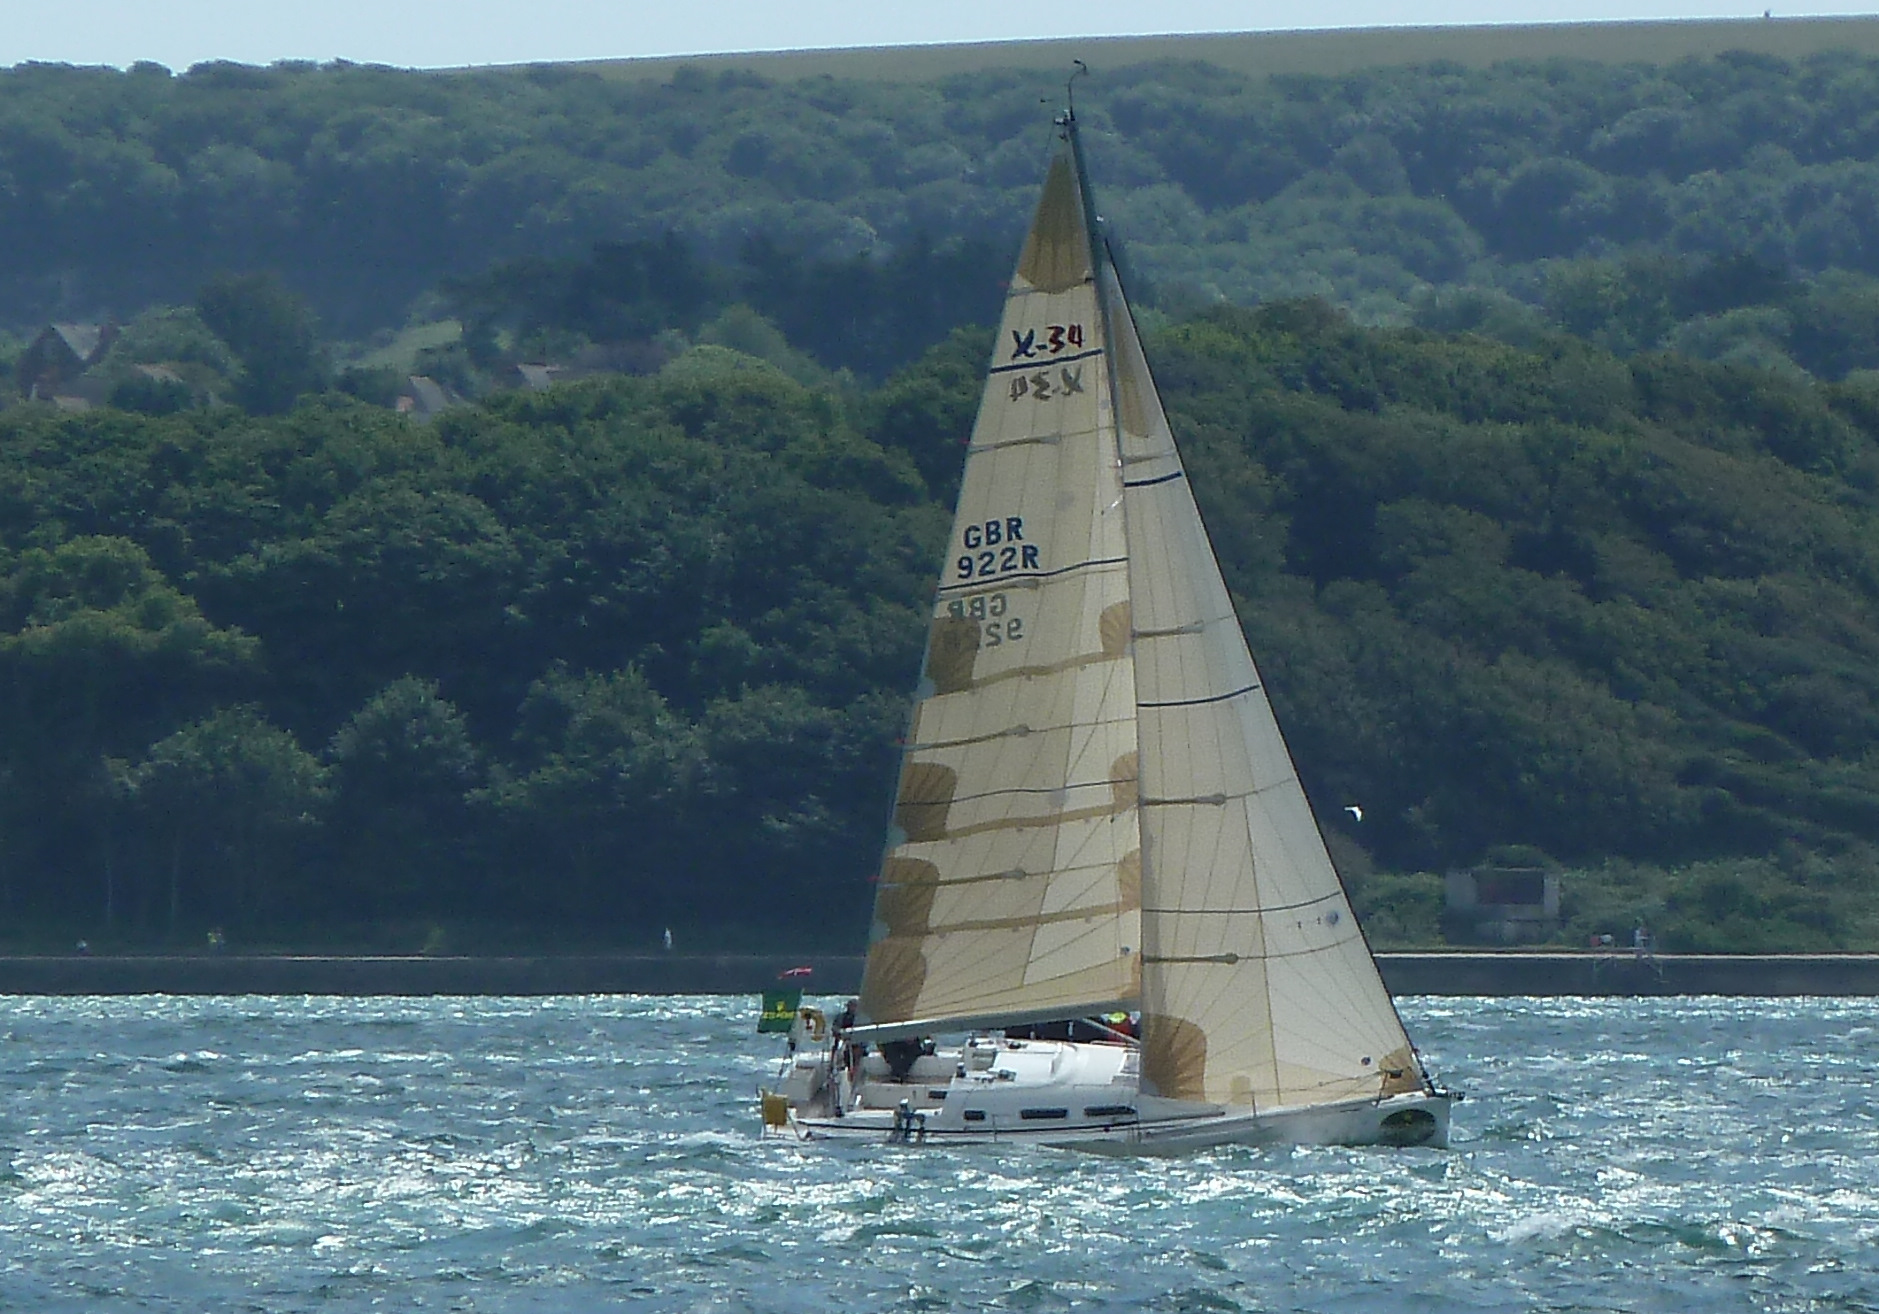 Beating past Hurst Castle